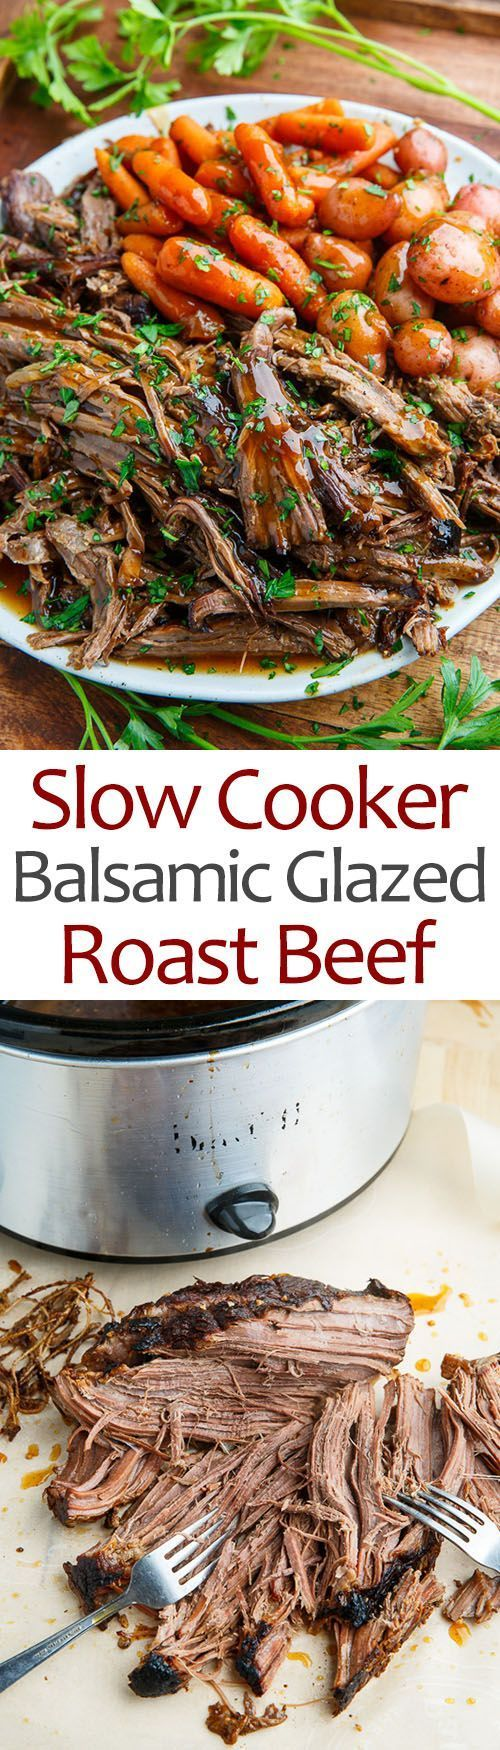 Moist and fall apart tender roast beef in a tasty balsamic glaze that is so easy to make in the slow cooker!